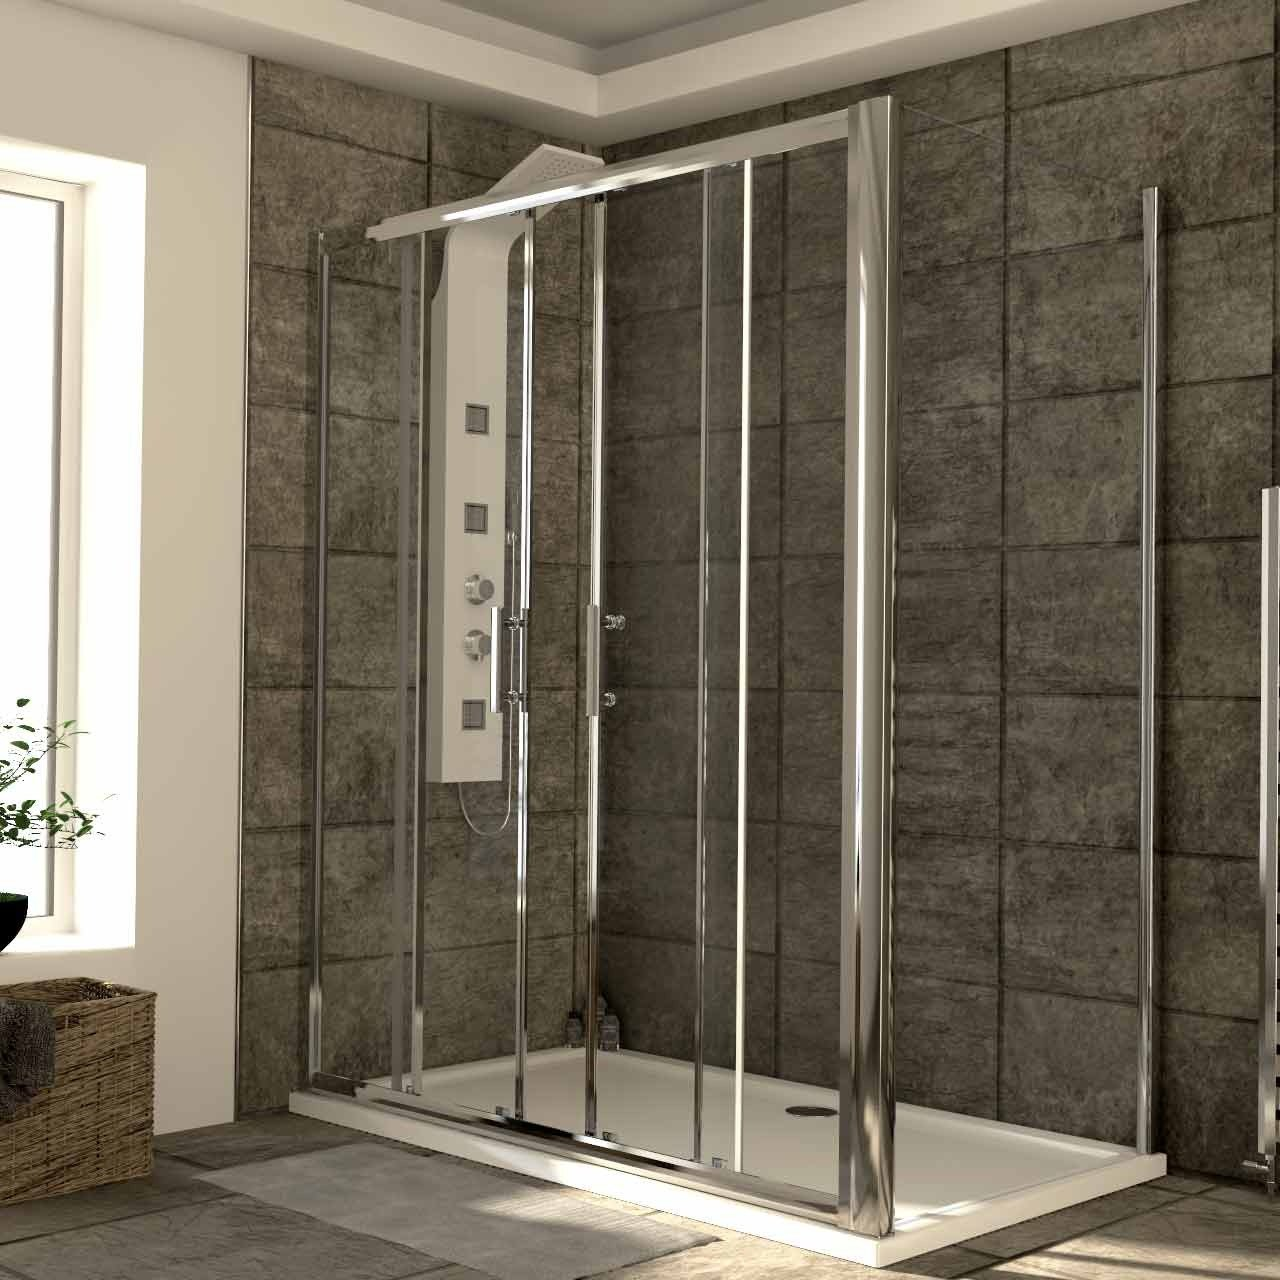 Series 6 1600mm x 900mm Double Sliding Door Shower Enclosure